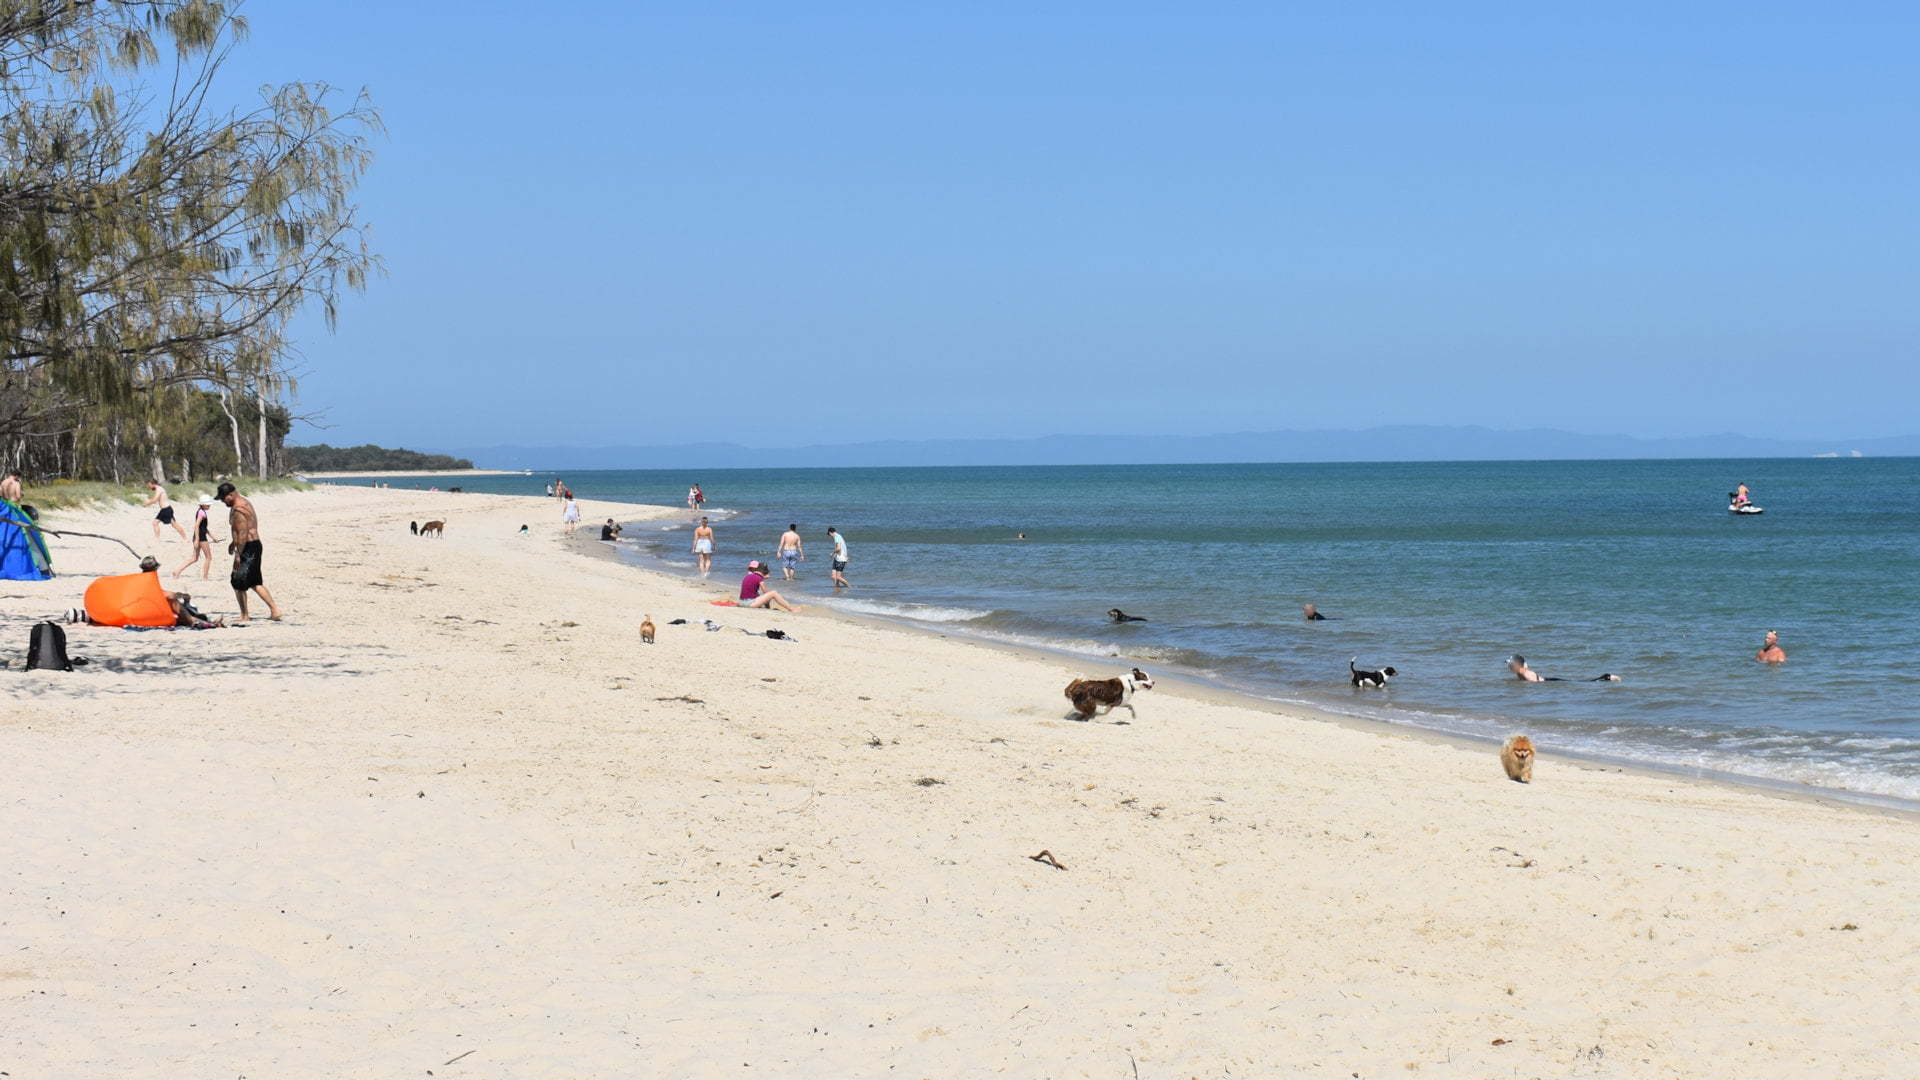 Calm beach with people and dogs, at Red Beach looking east, a dog friendly beach on Bribie Island